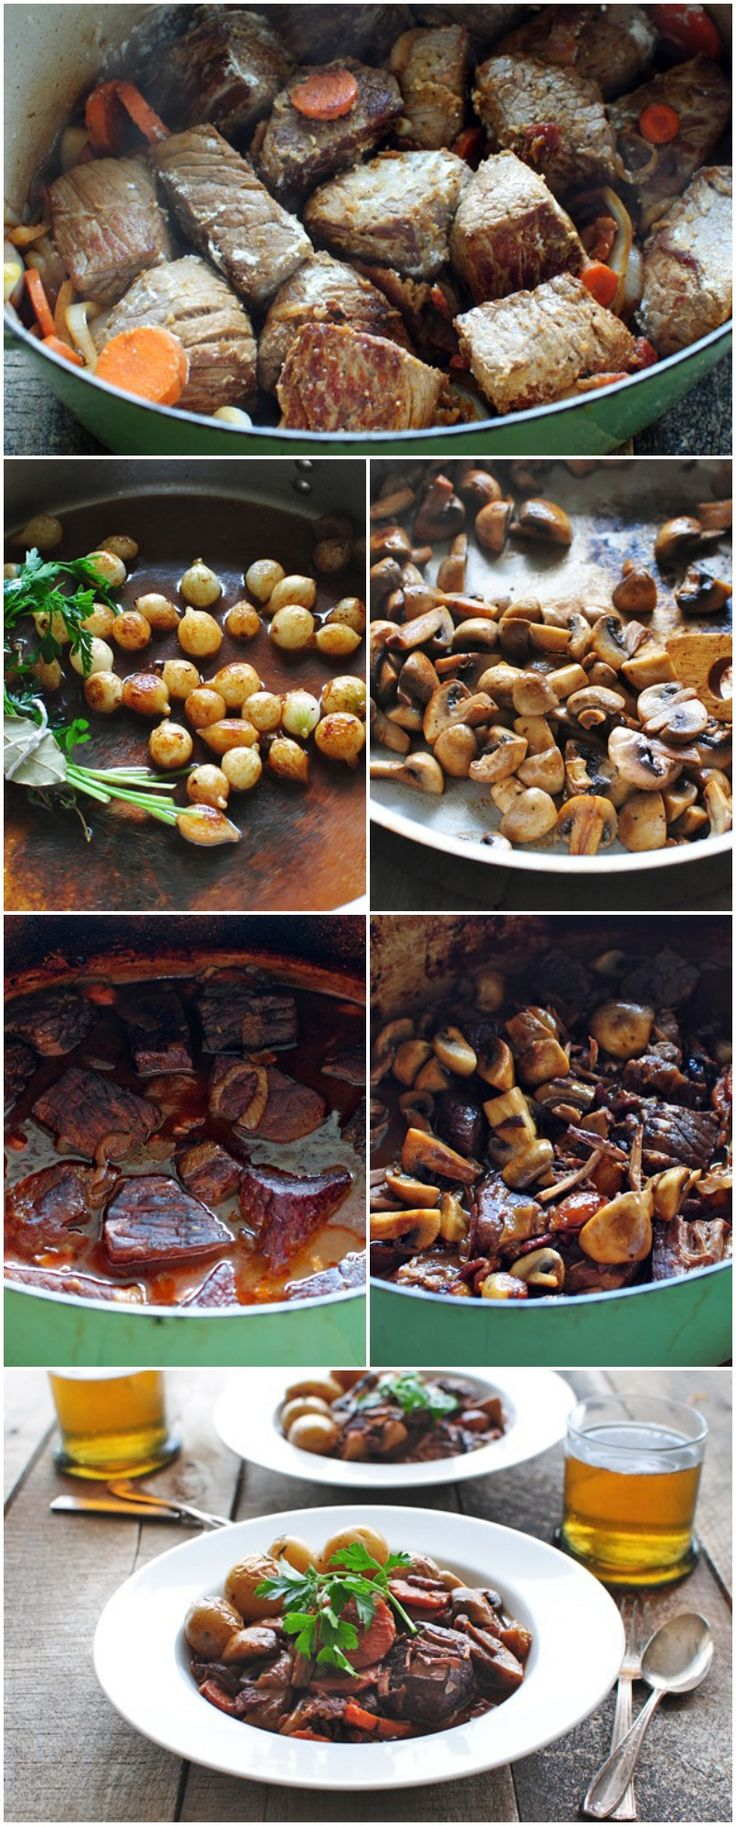 HOW TO: Make Julia Child's Beef Bourguignon #howto